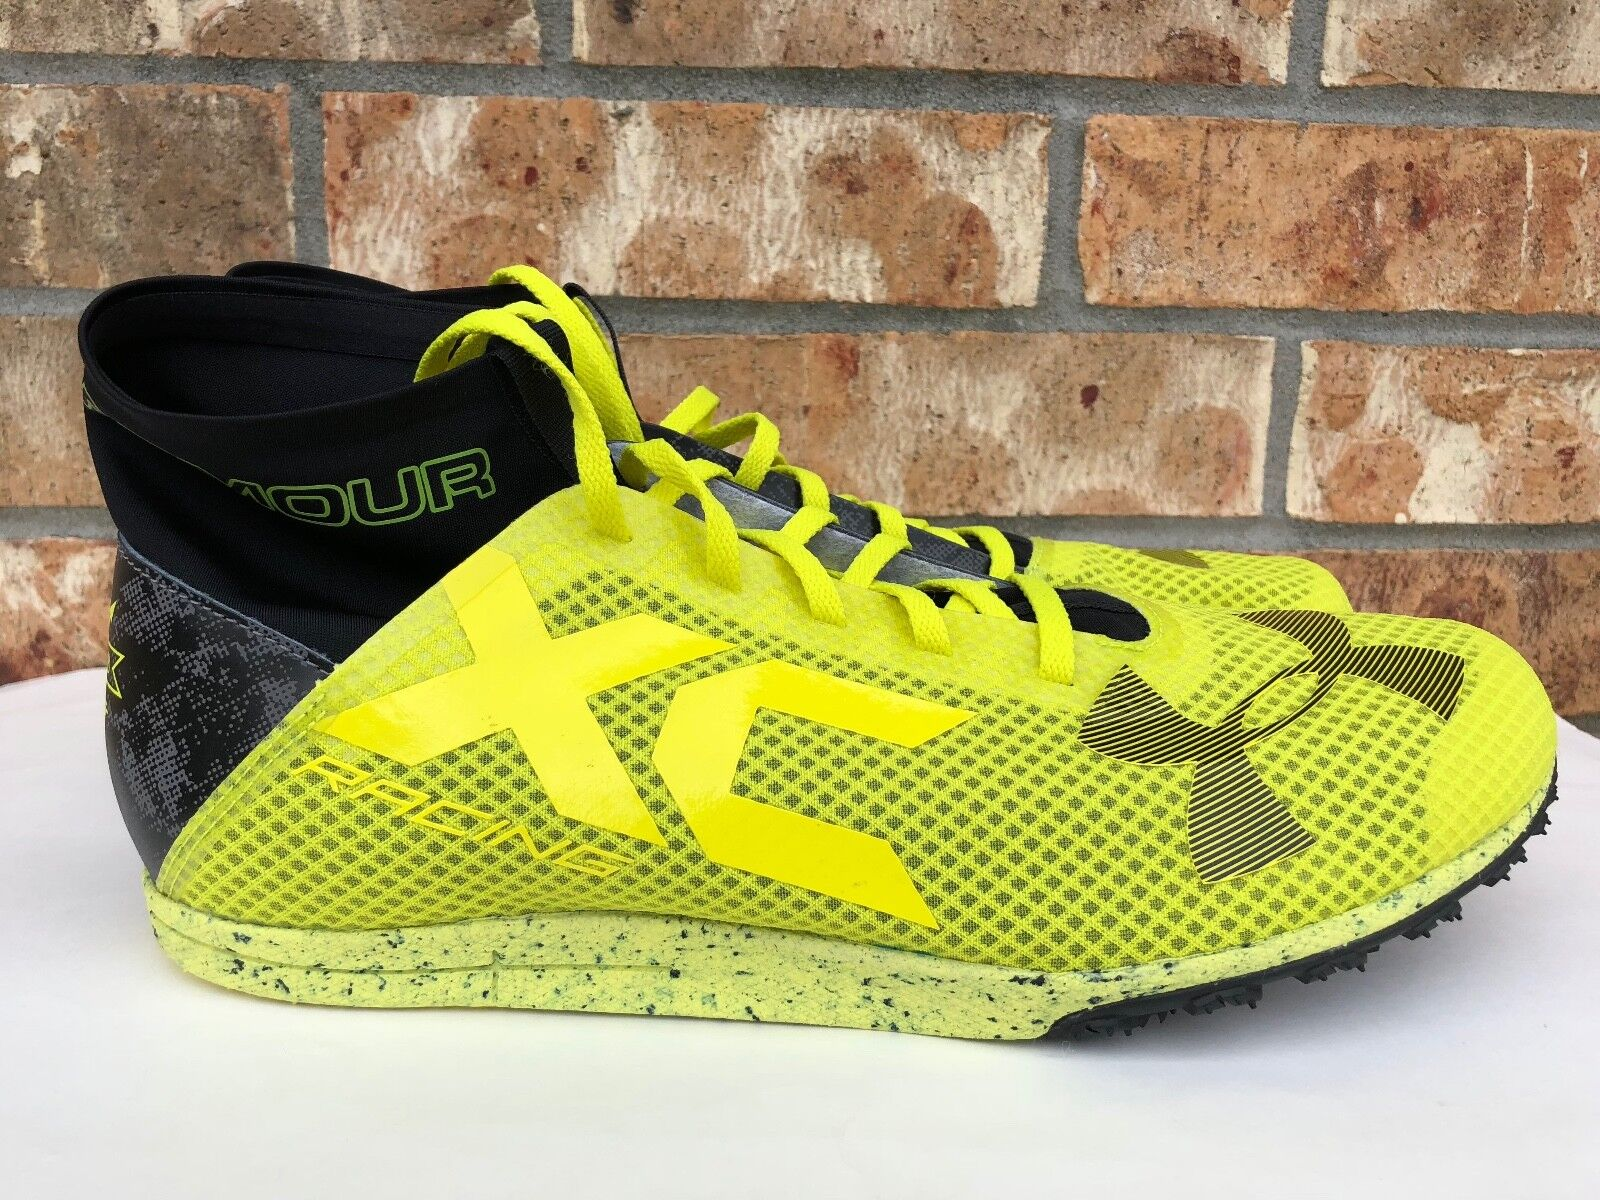 Men's Under Armour Bandit XC Spike Track Shoes Flash Yellow Black 1273938-738